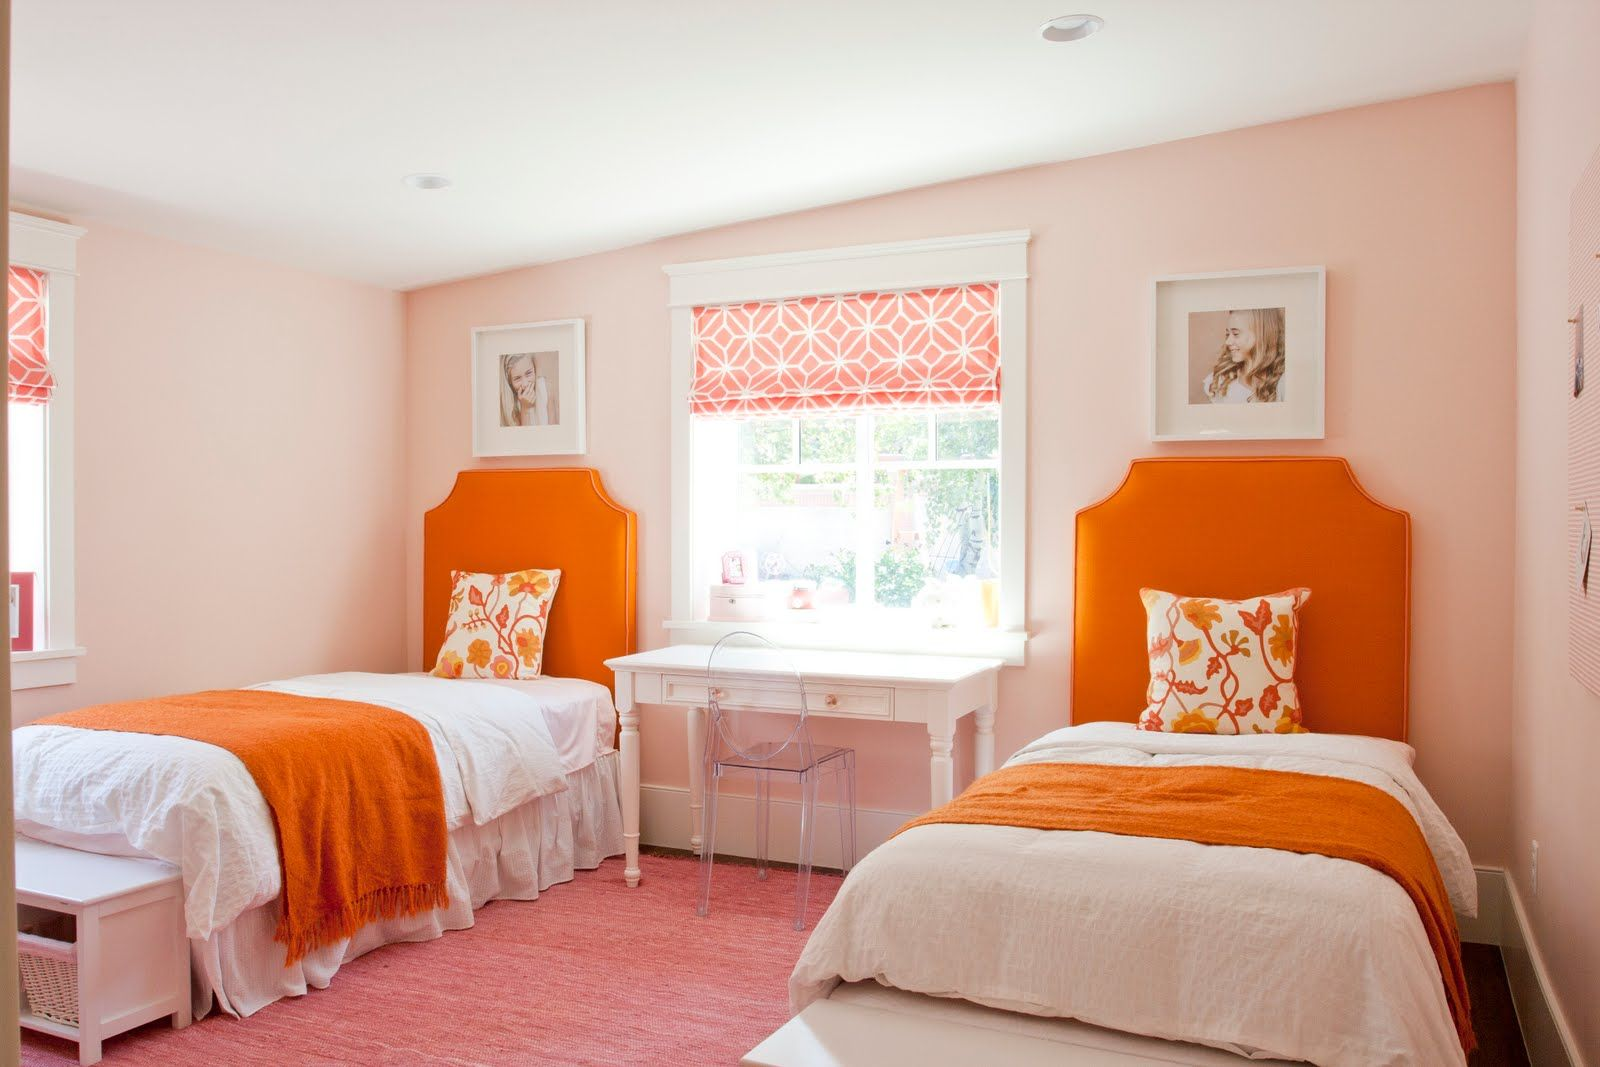 Bedroom colors for girls room - Decoration Decoration Shared Bedroom Orange Pink Tones Colors That Make Orange And Compliment Its Tones Orange Complement Orange Colors Oranges Tones Plus